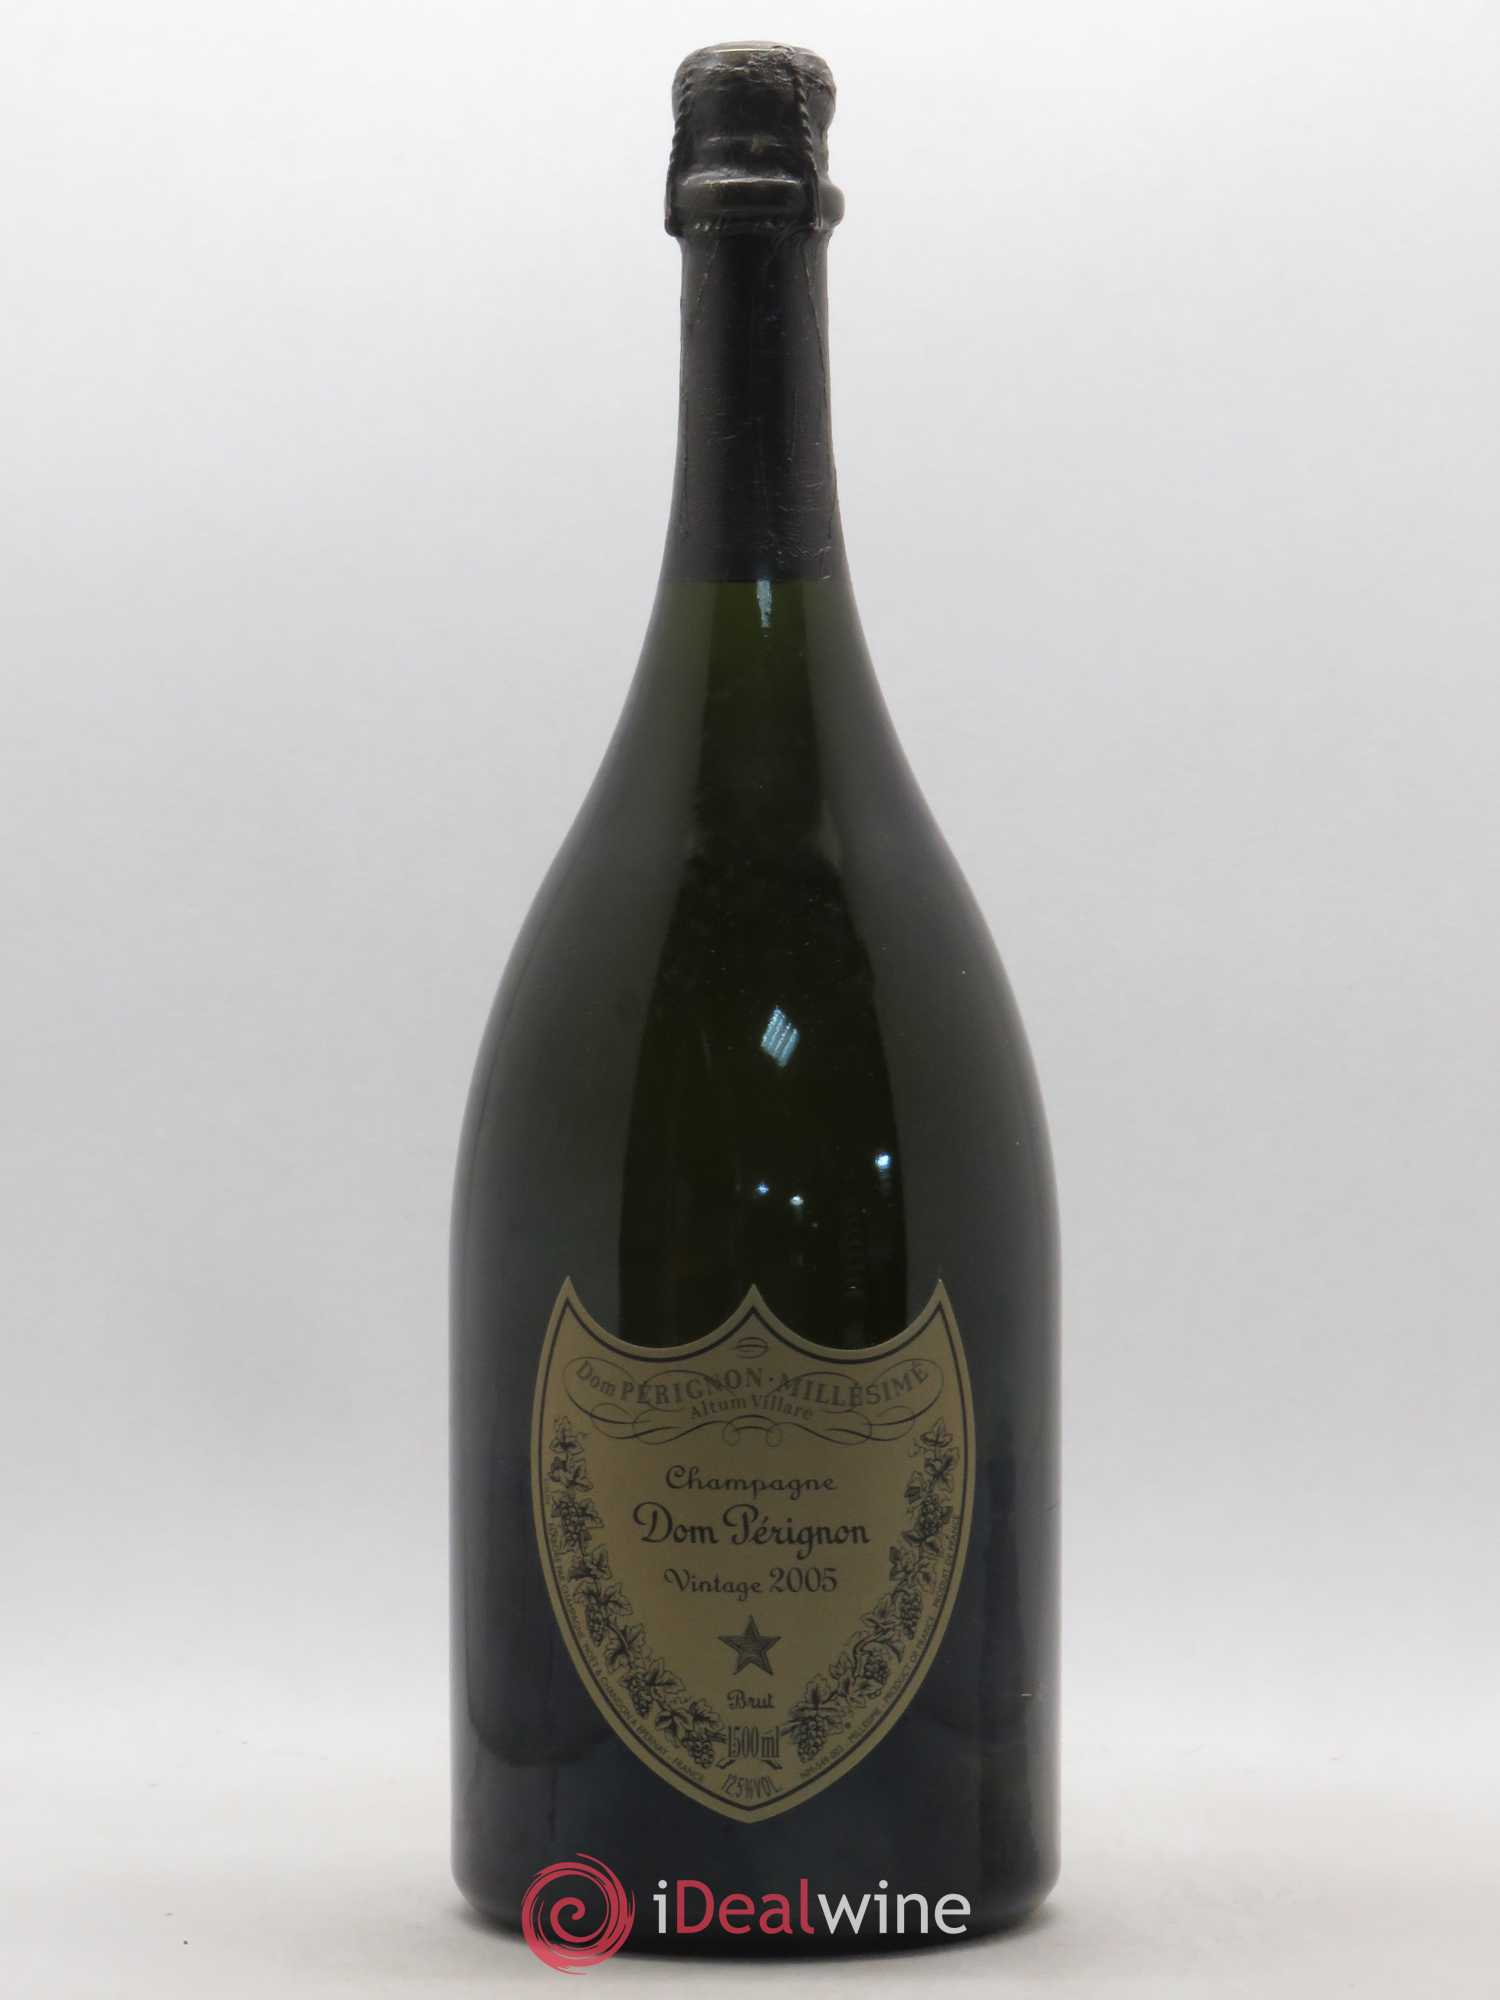 Dom Pérignon Moët & Chandon  2005 - Lot de 1 Magnum